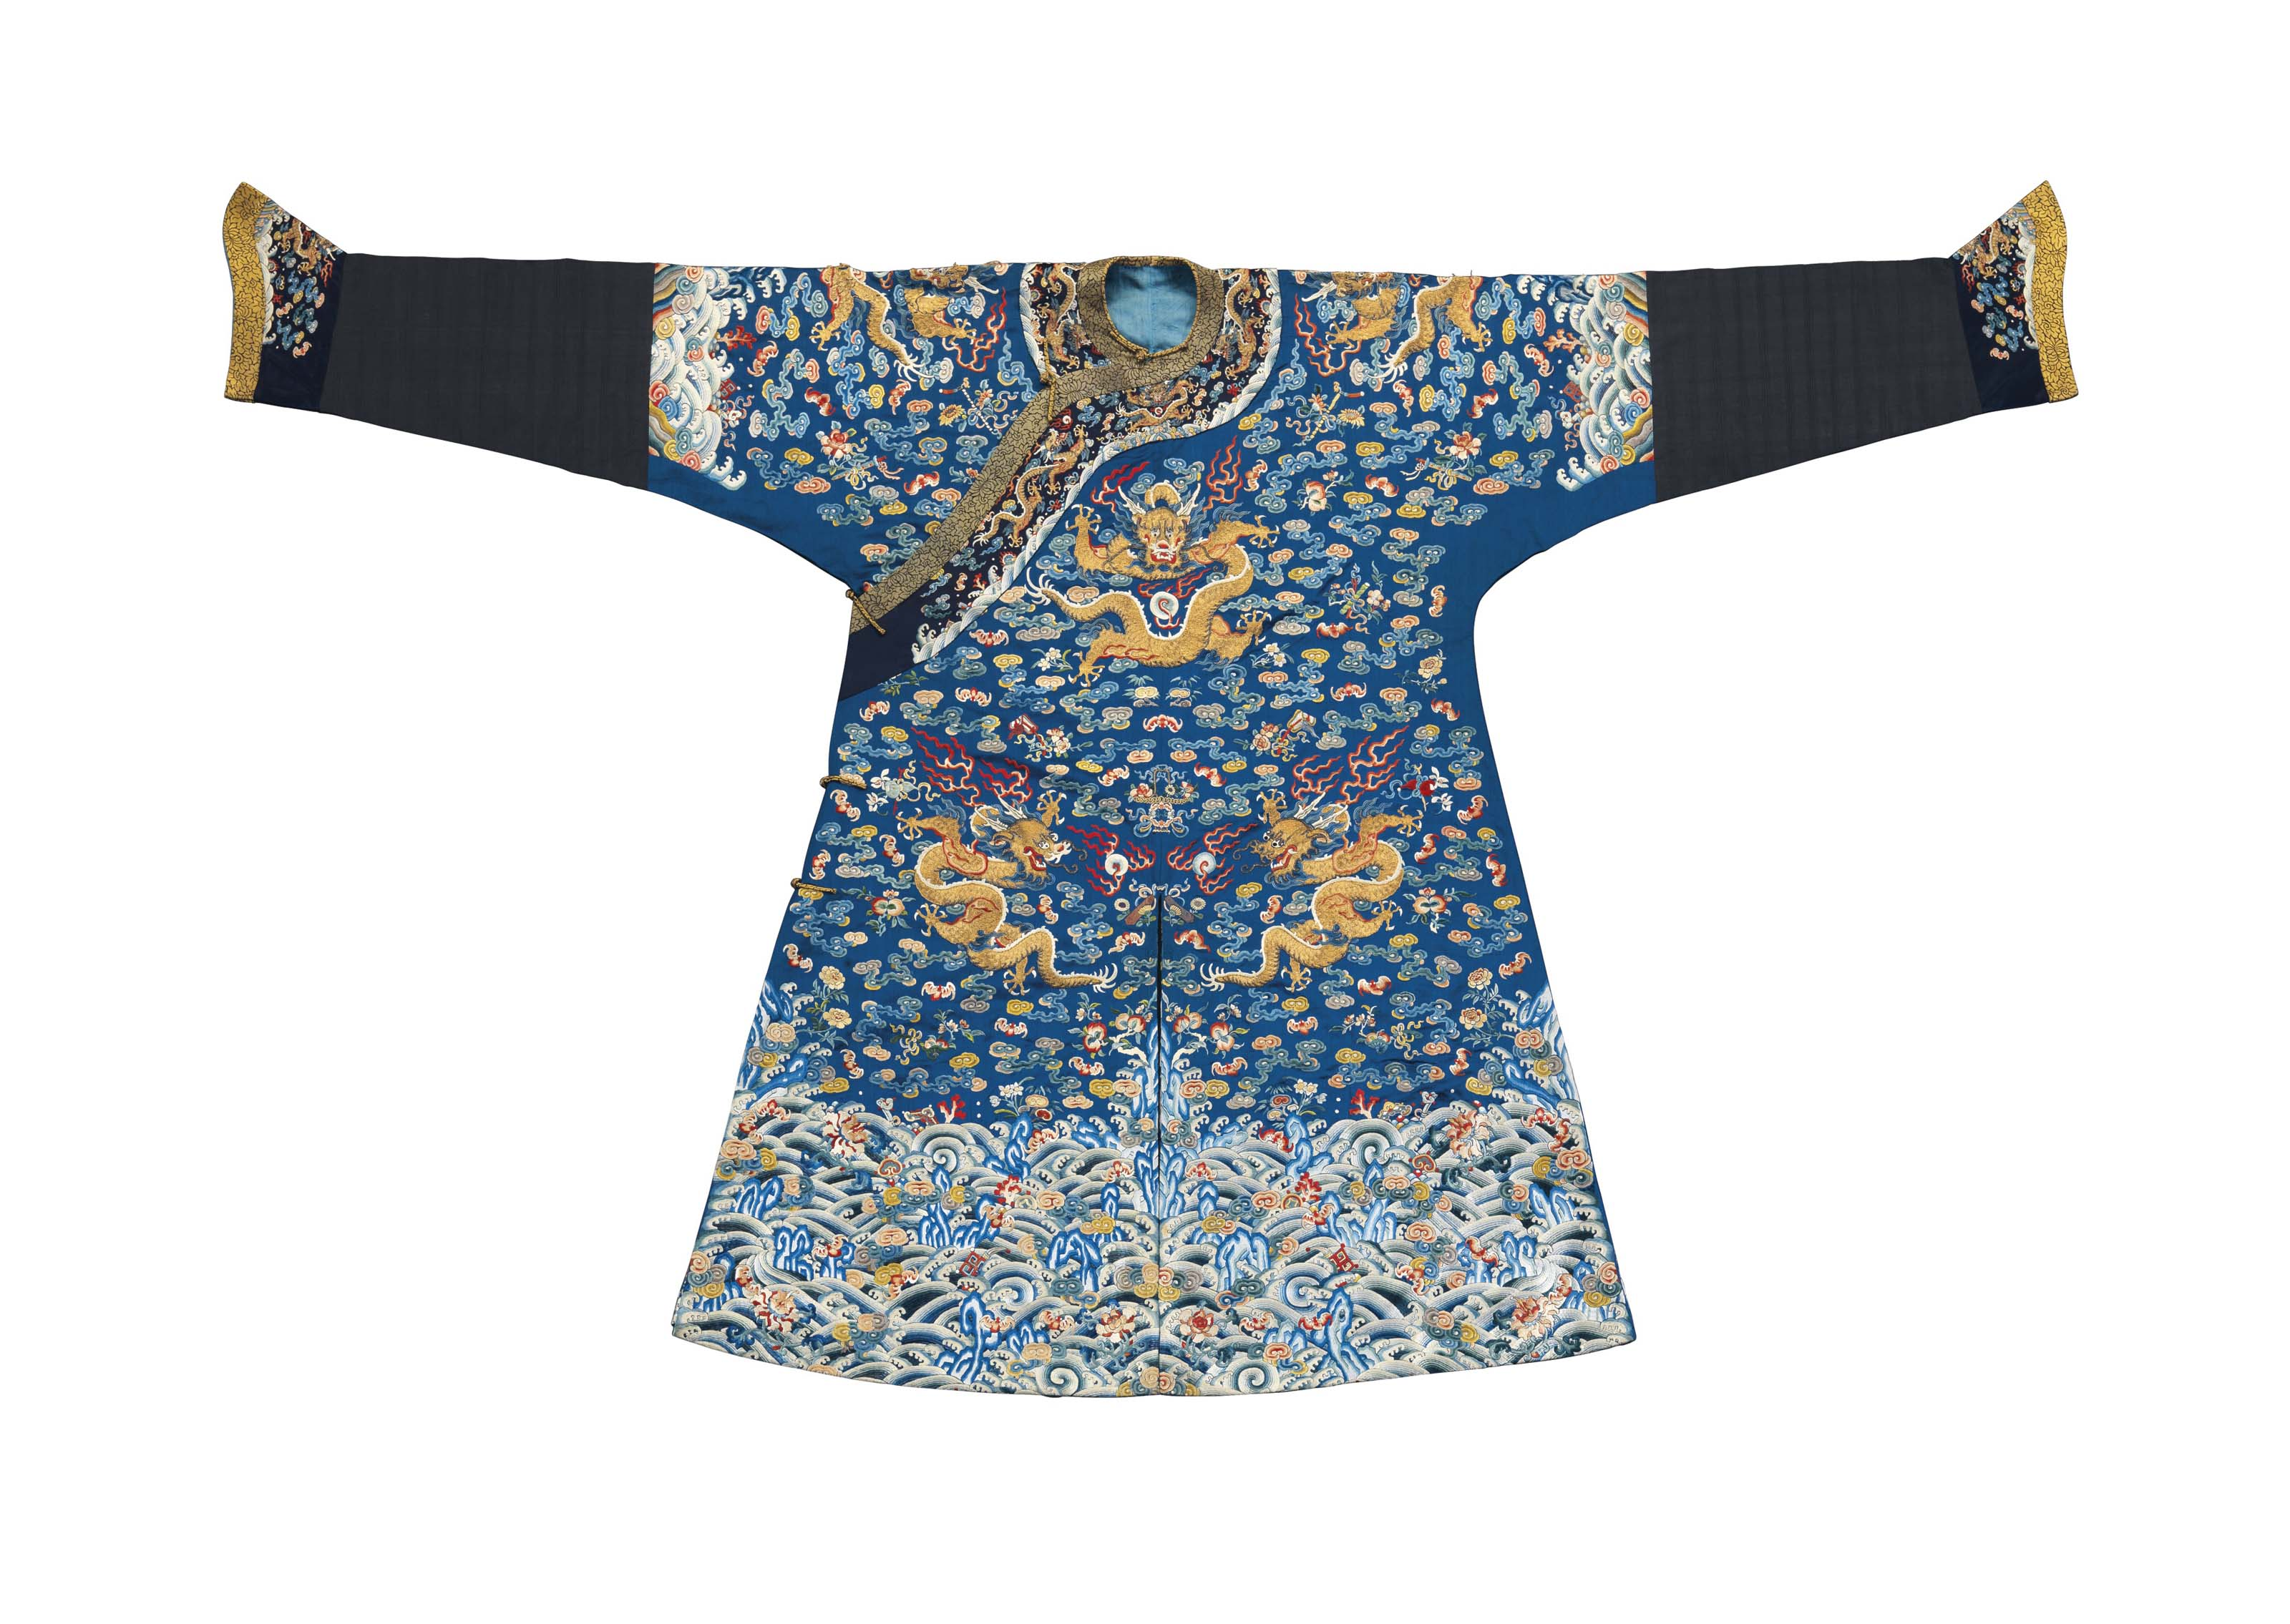 A FINELY EMBROIDERED BLUE SILK